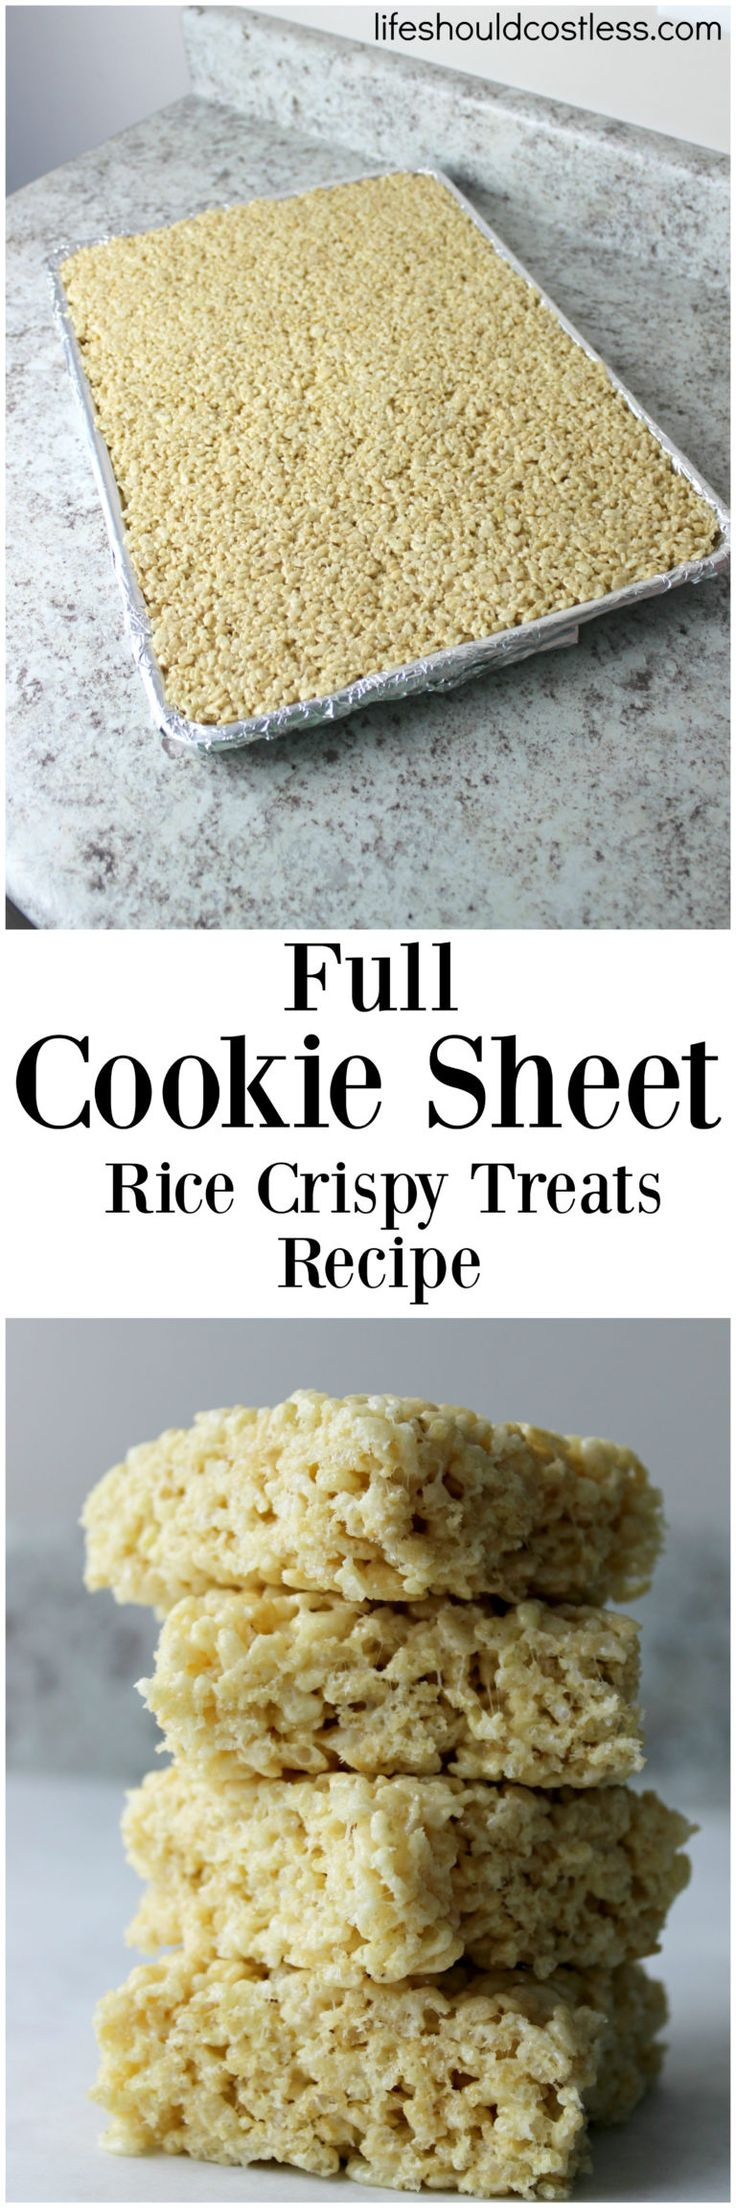 Full Cookie Sheet Rice Crispy Treats Recipe. Feed a crowd with just one batch or take it to a bake sale. This is one of those Popular Dessert Pins that you won't want to lose.